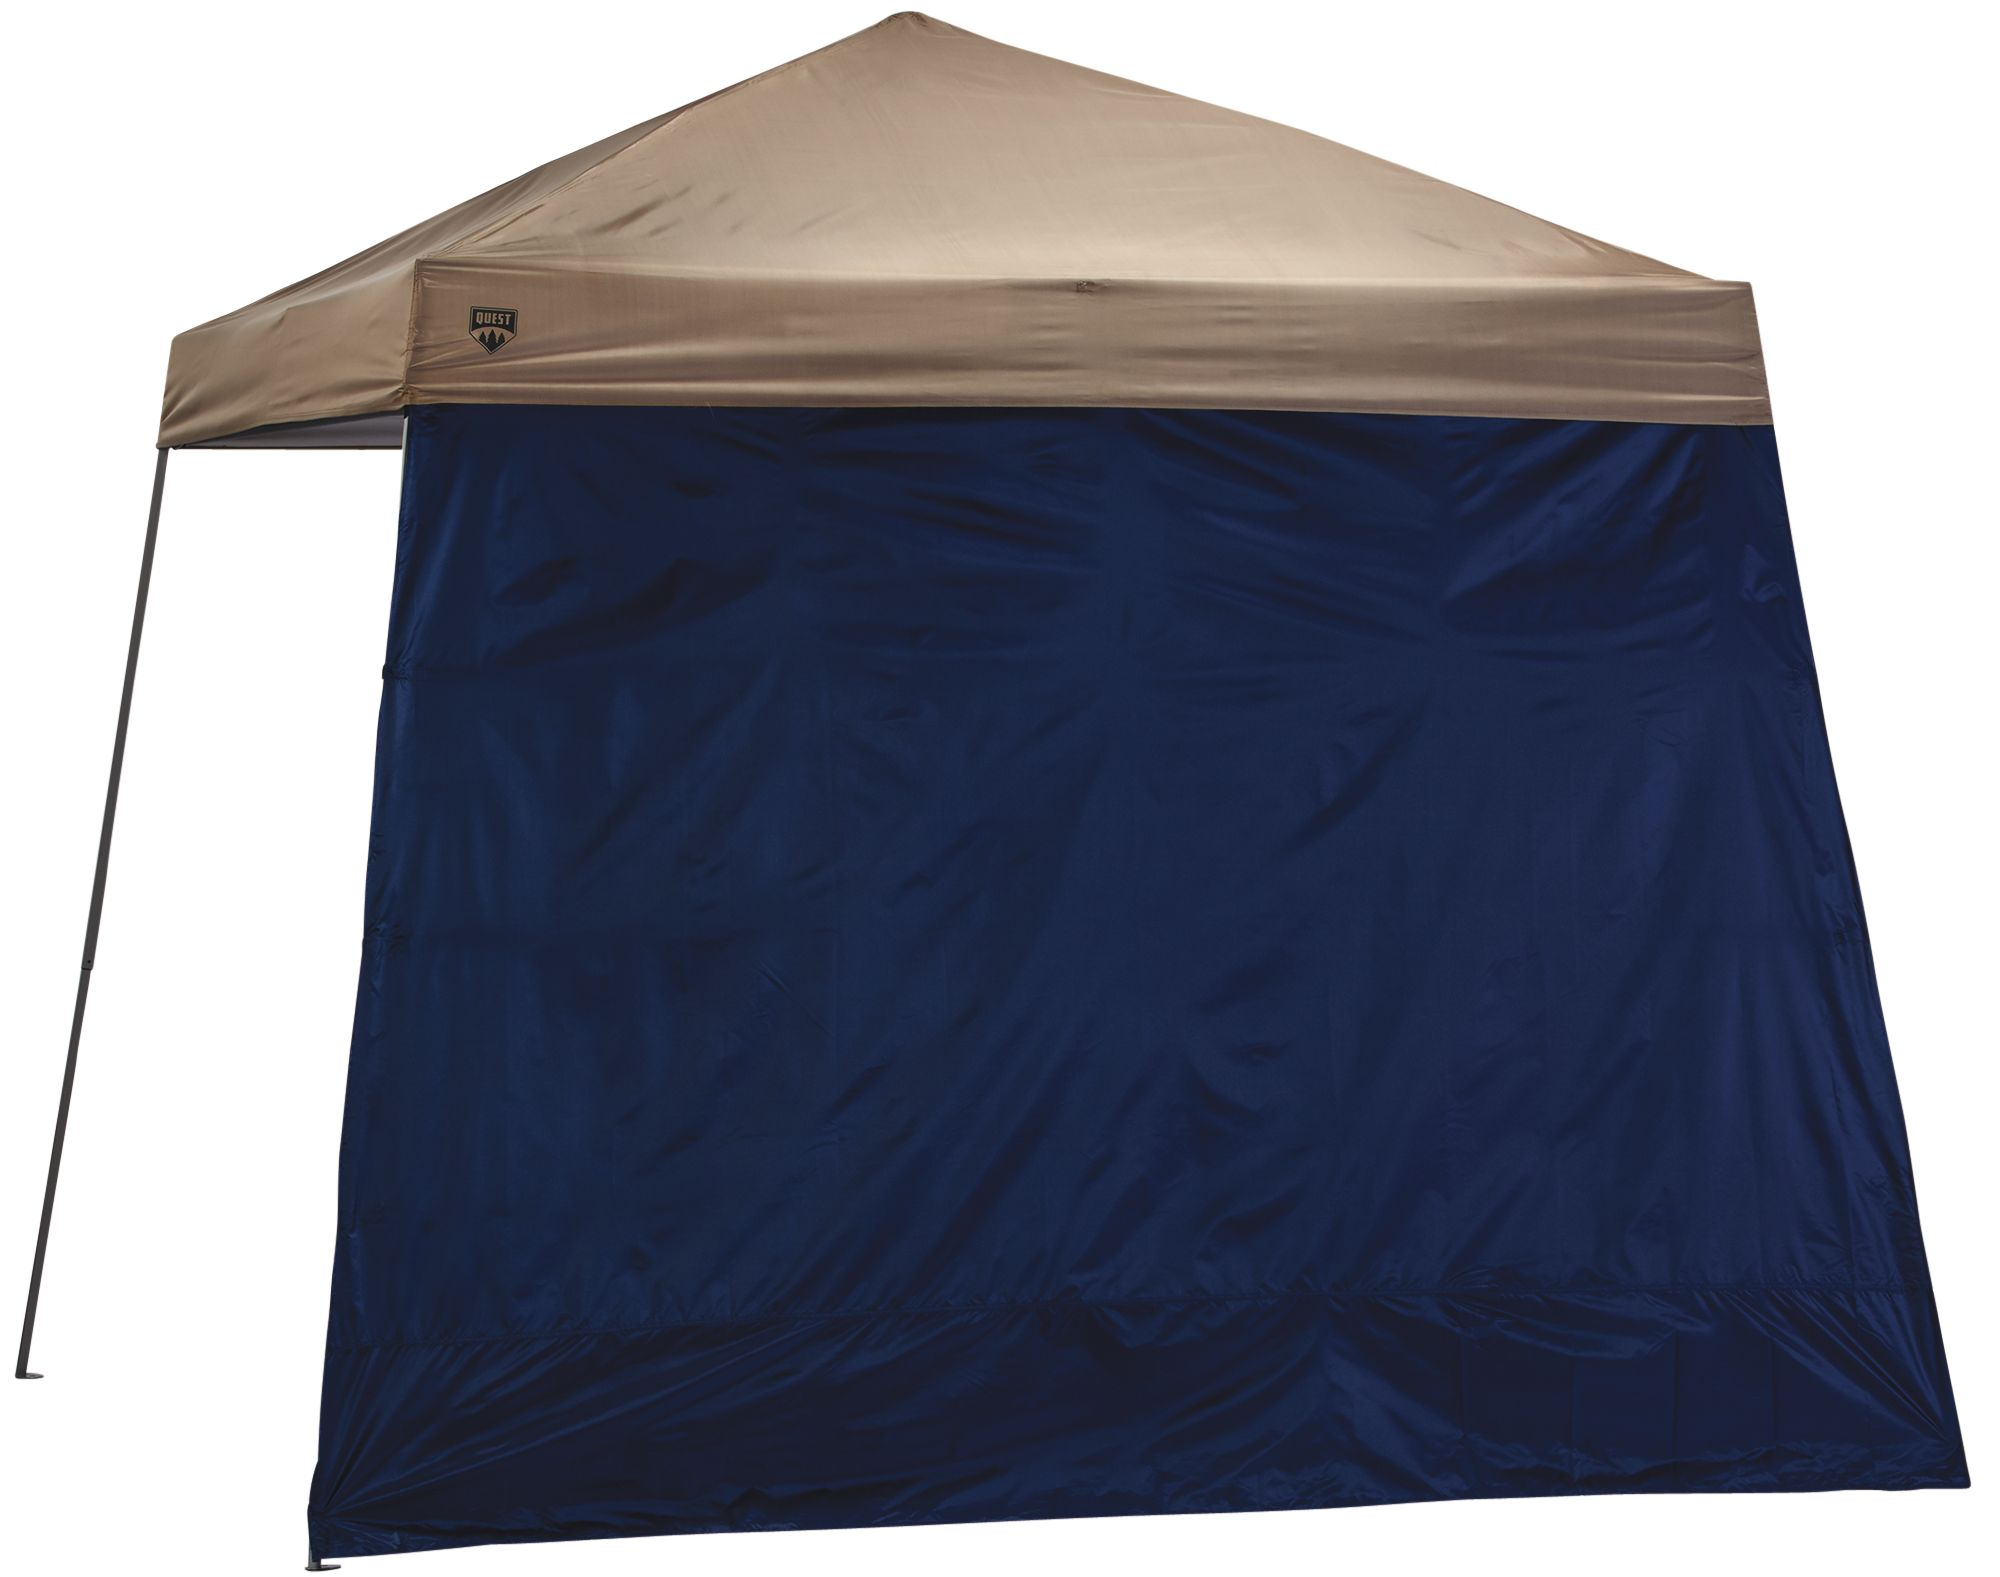 Product Image Quest 10u0027 x 10u0027 Slant Leg Canopy Sidewall  sc 1 st  DICKu0027S Sporting Goods & Canopy Tents Pop Up Tents u0026 More | DICKu0027S Sporting Goods